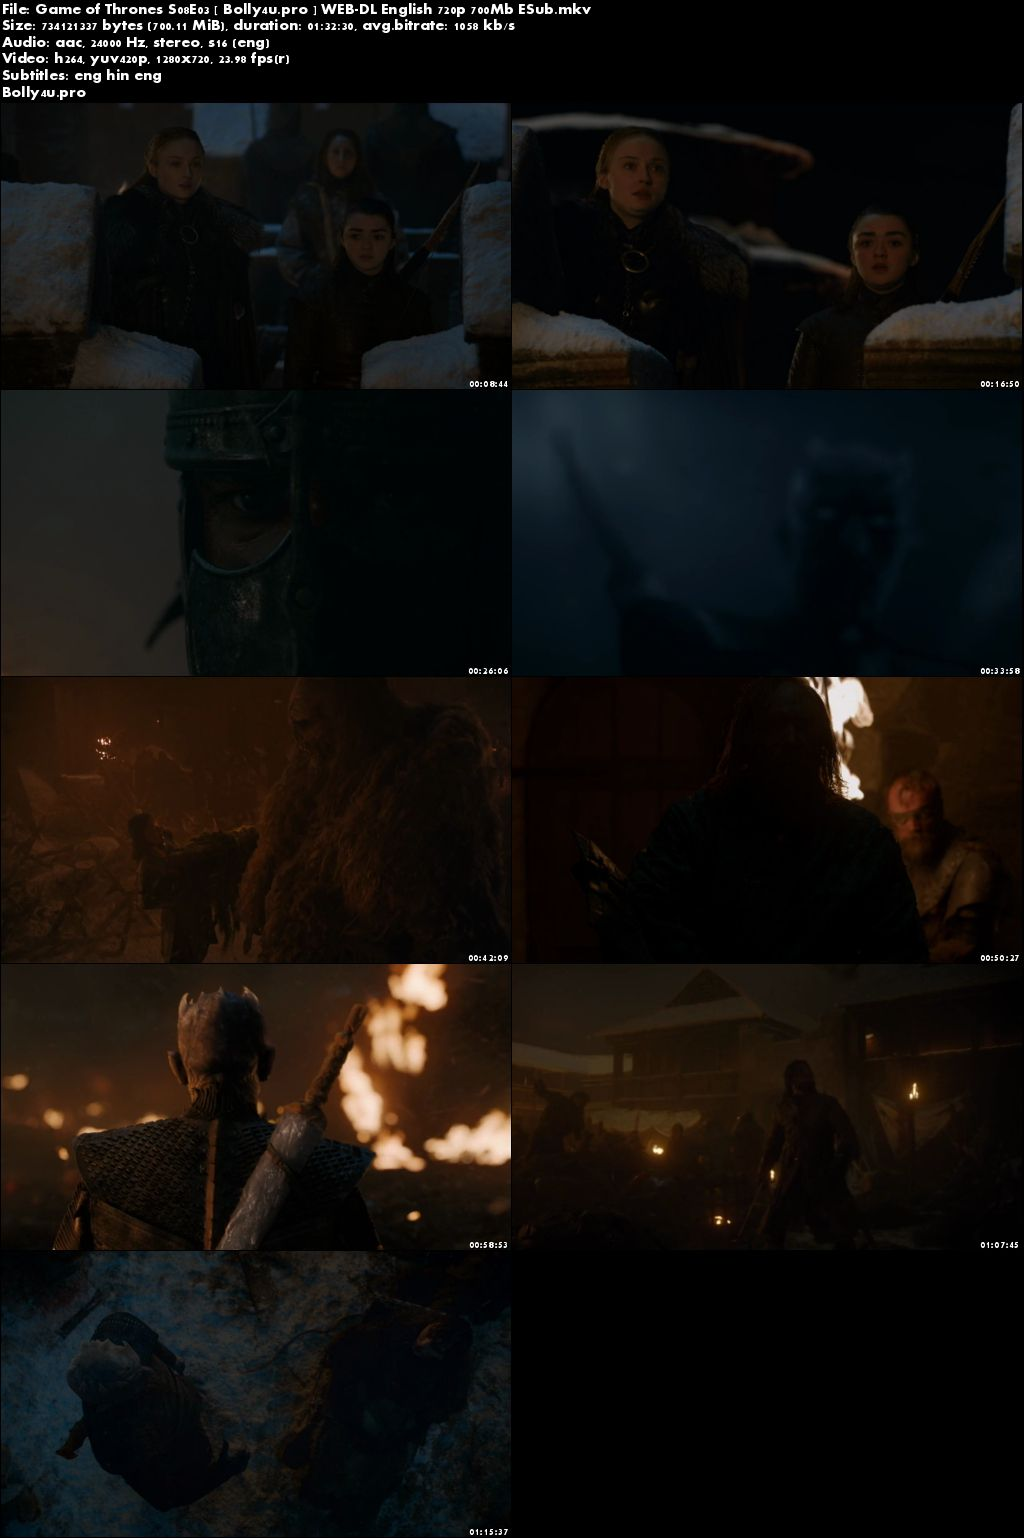 Game of Thrones S08E03 WEB-DL 700MB English 720p Hindi Sub Download